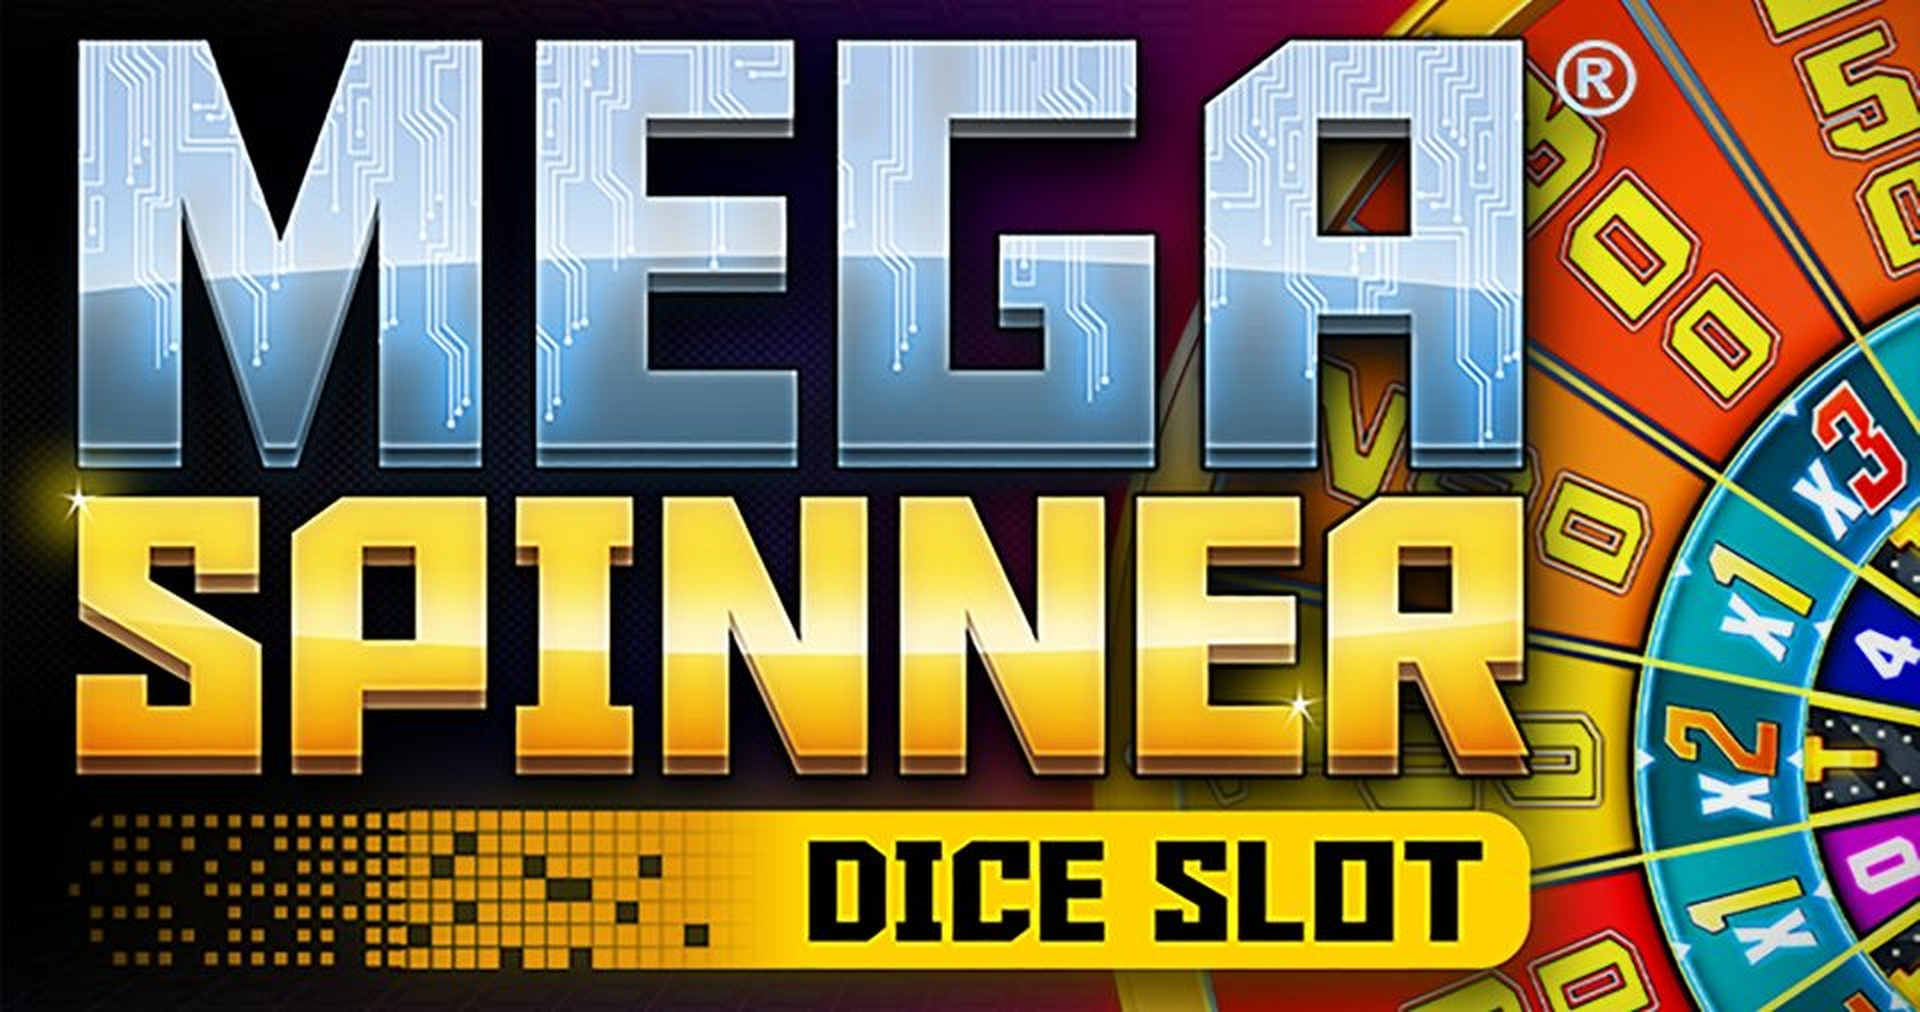 The Mega Spinner Dice Slot Online Slot Demo Game by GAMING1